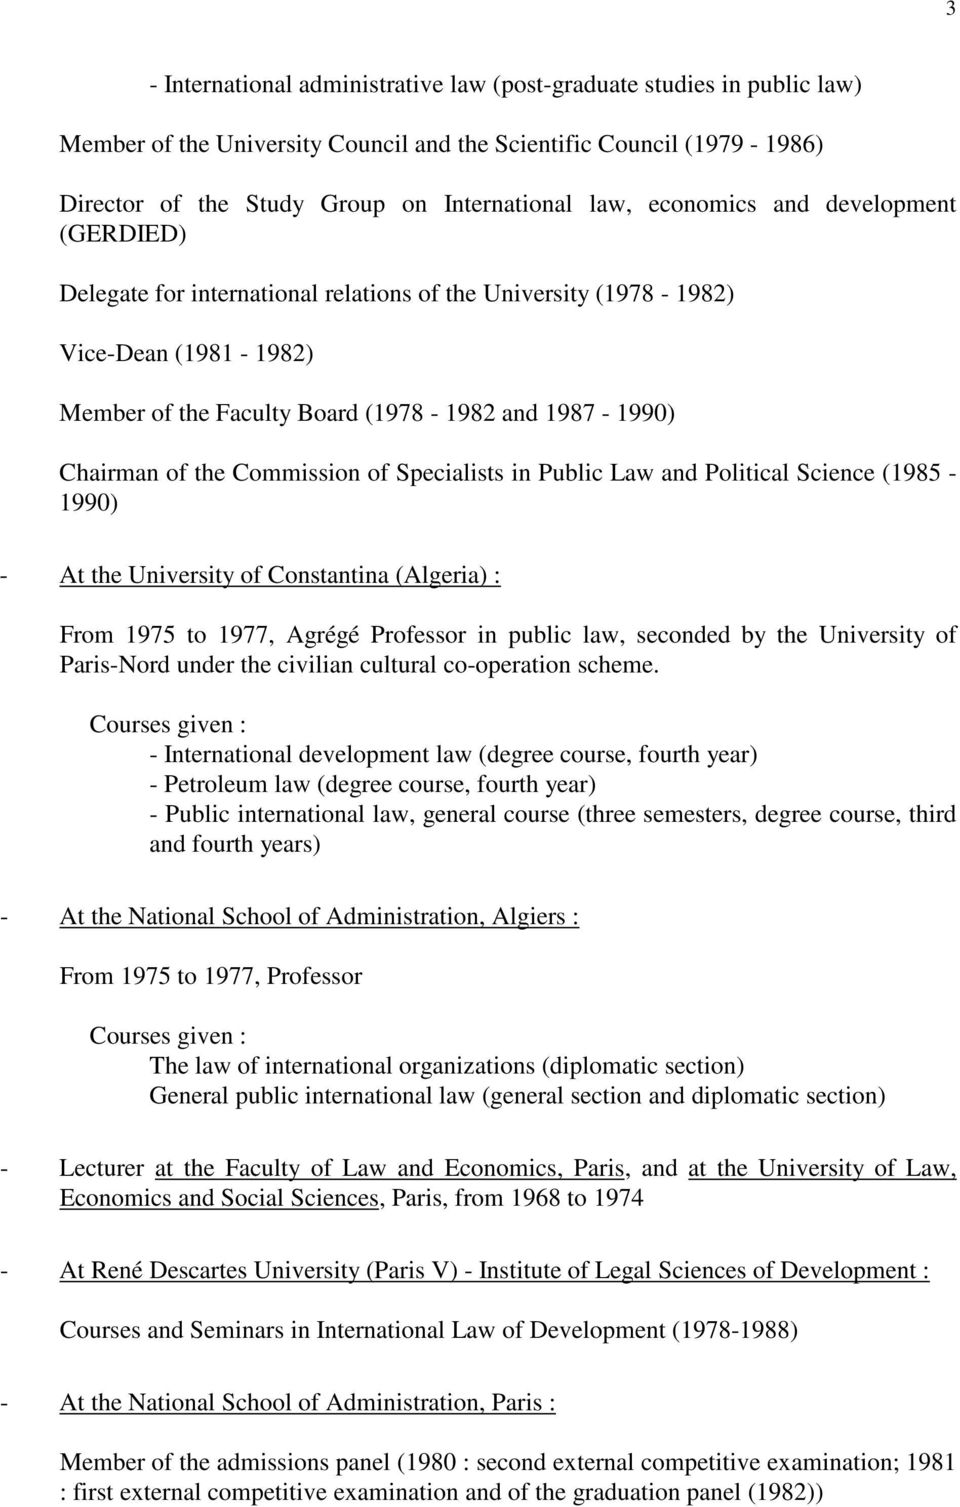 Commission of Specialists in Public Law and Political Science (1985-1990) - At the University of Constantina (Algeria) : From 1975 to 1977, Agrégé Professor in public law, seconded by the University